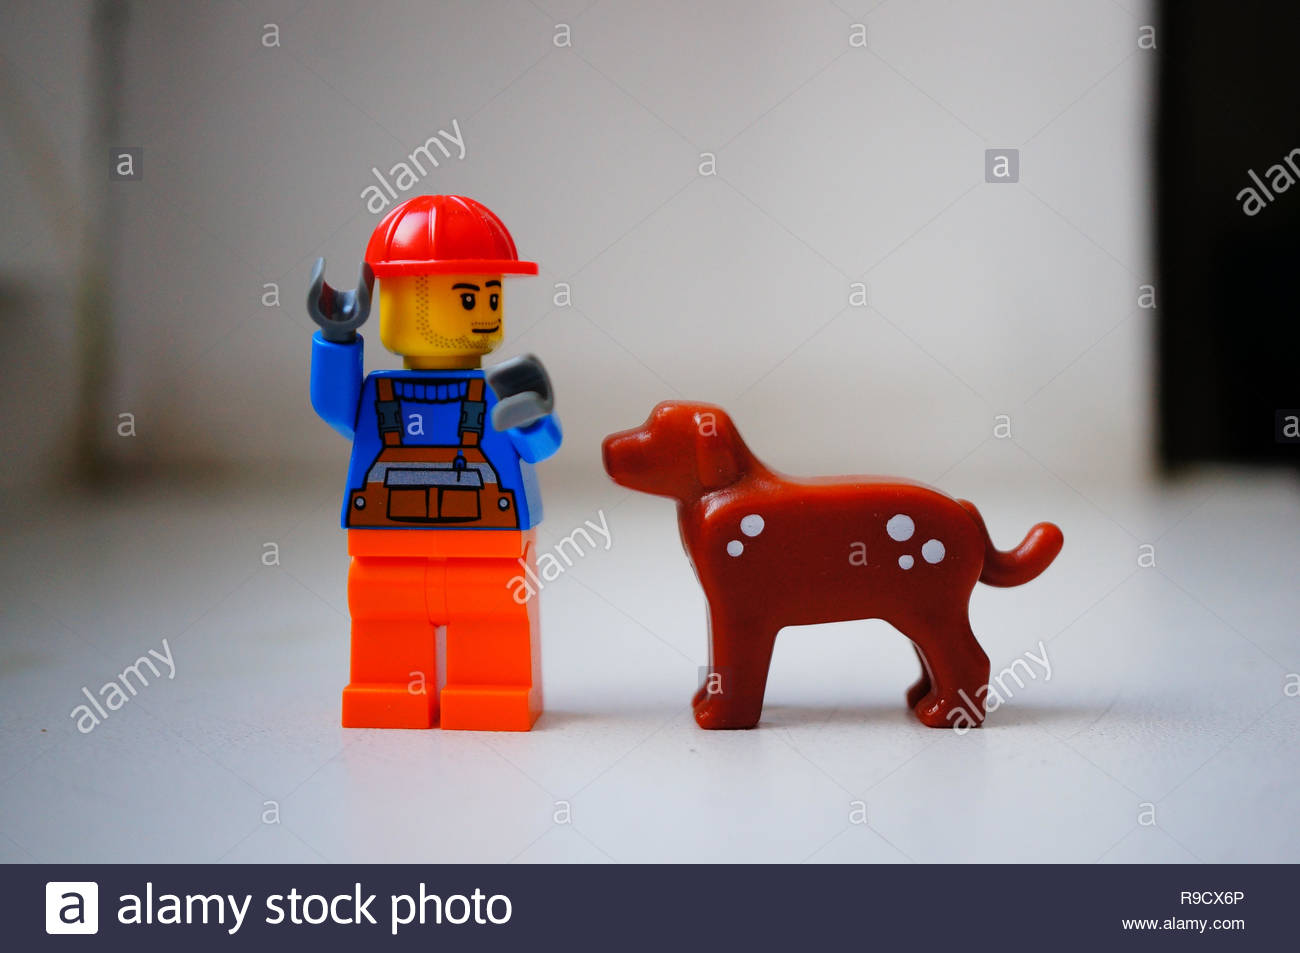 Poznan, Poland - December 22, 2018: Lego construction worker standing next to his best dog friend in soft focus background.  - Stock Image